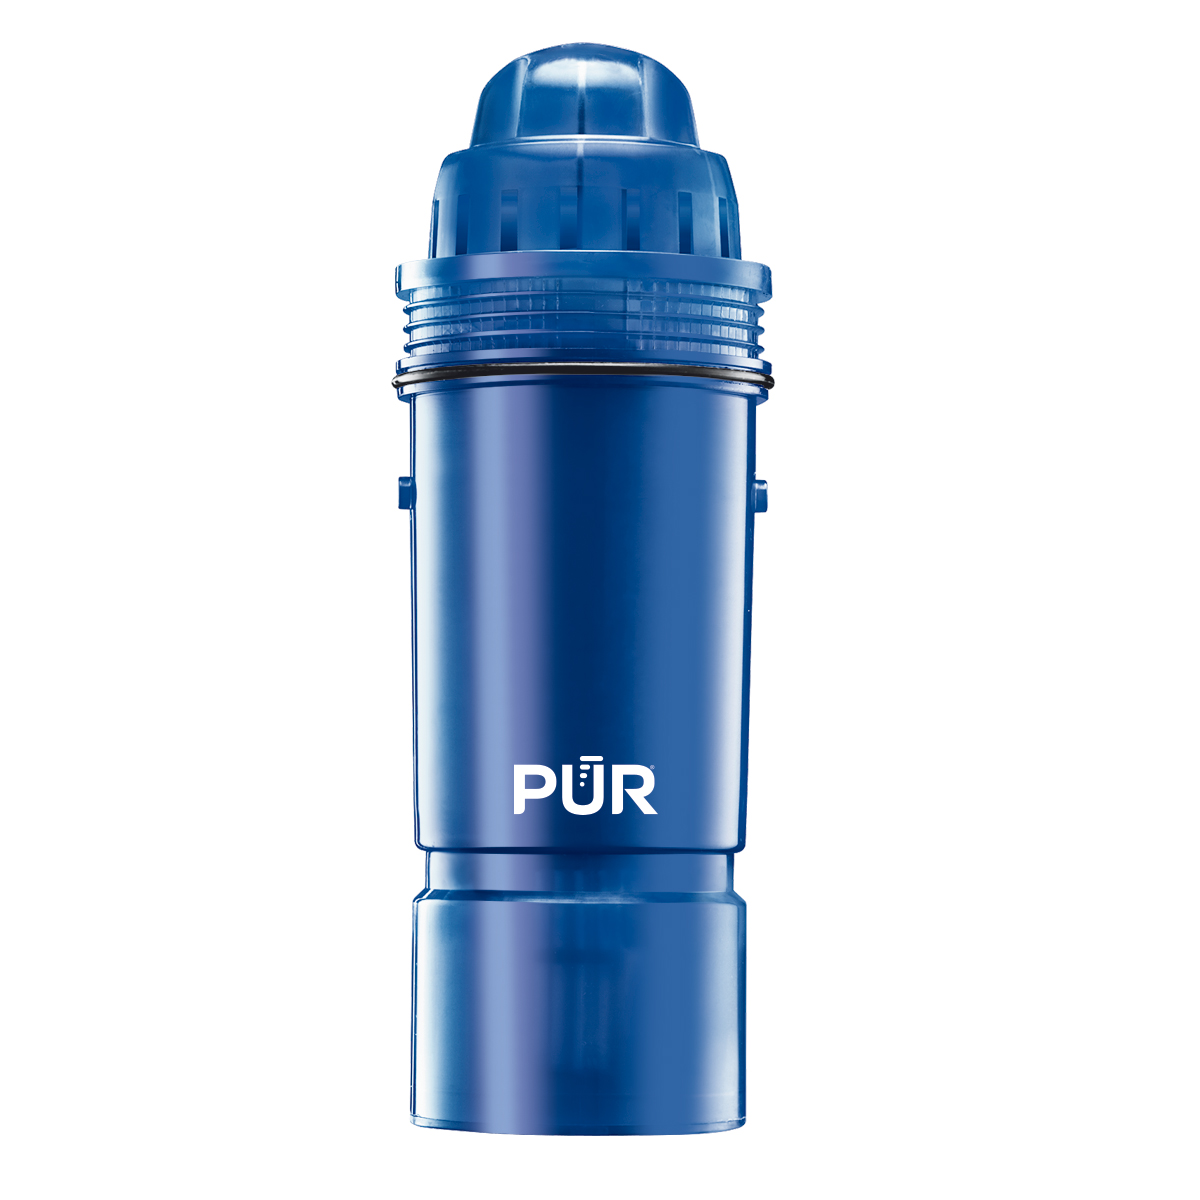 PUR Basic Pitcher/Dispenser Water Replacement Filter, CRF950Z, 1 Pack